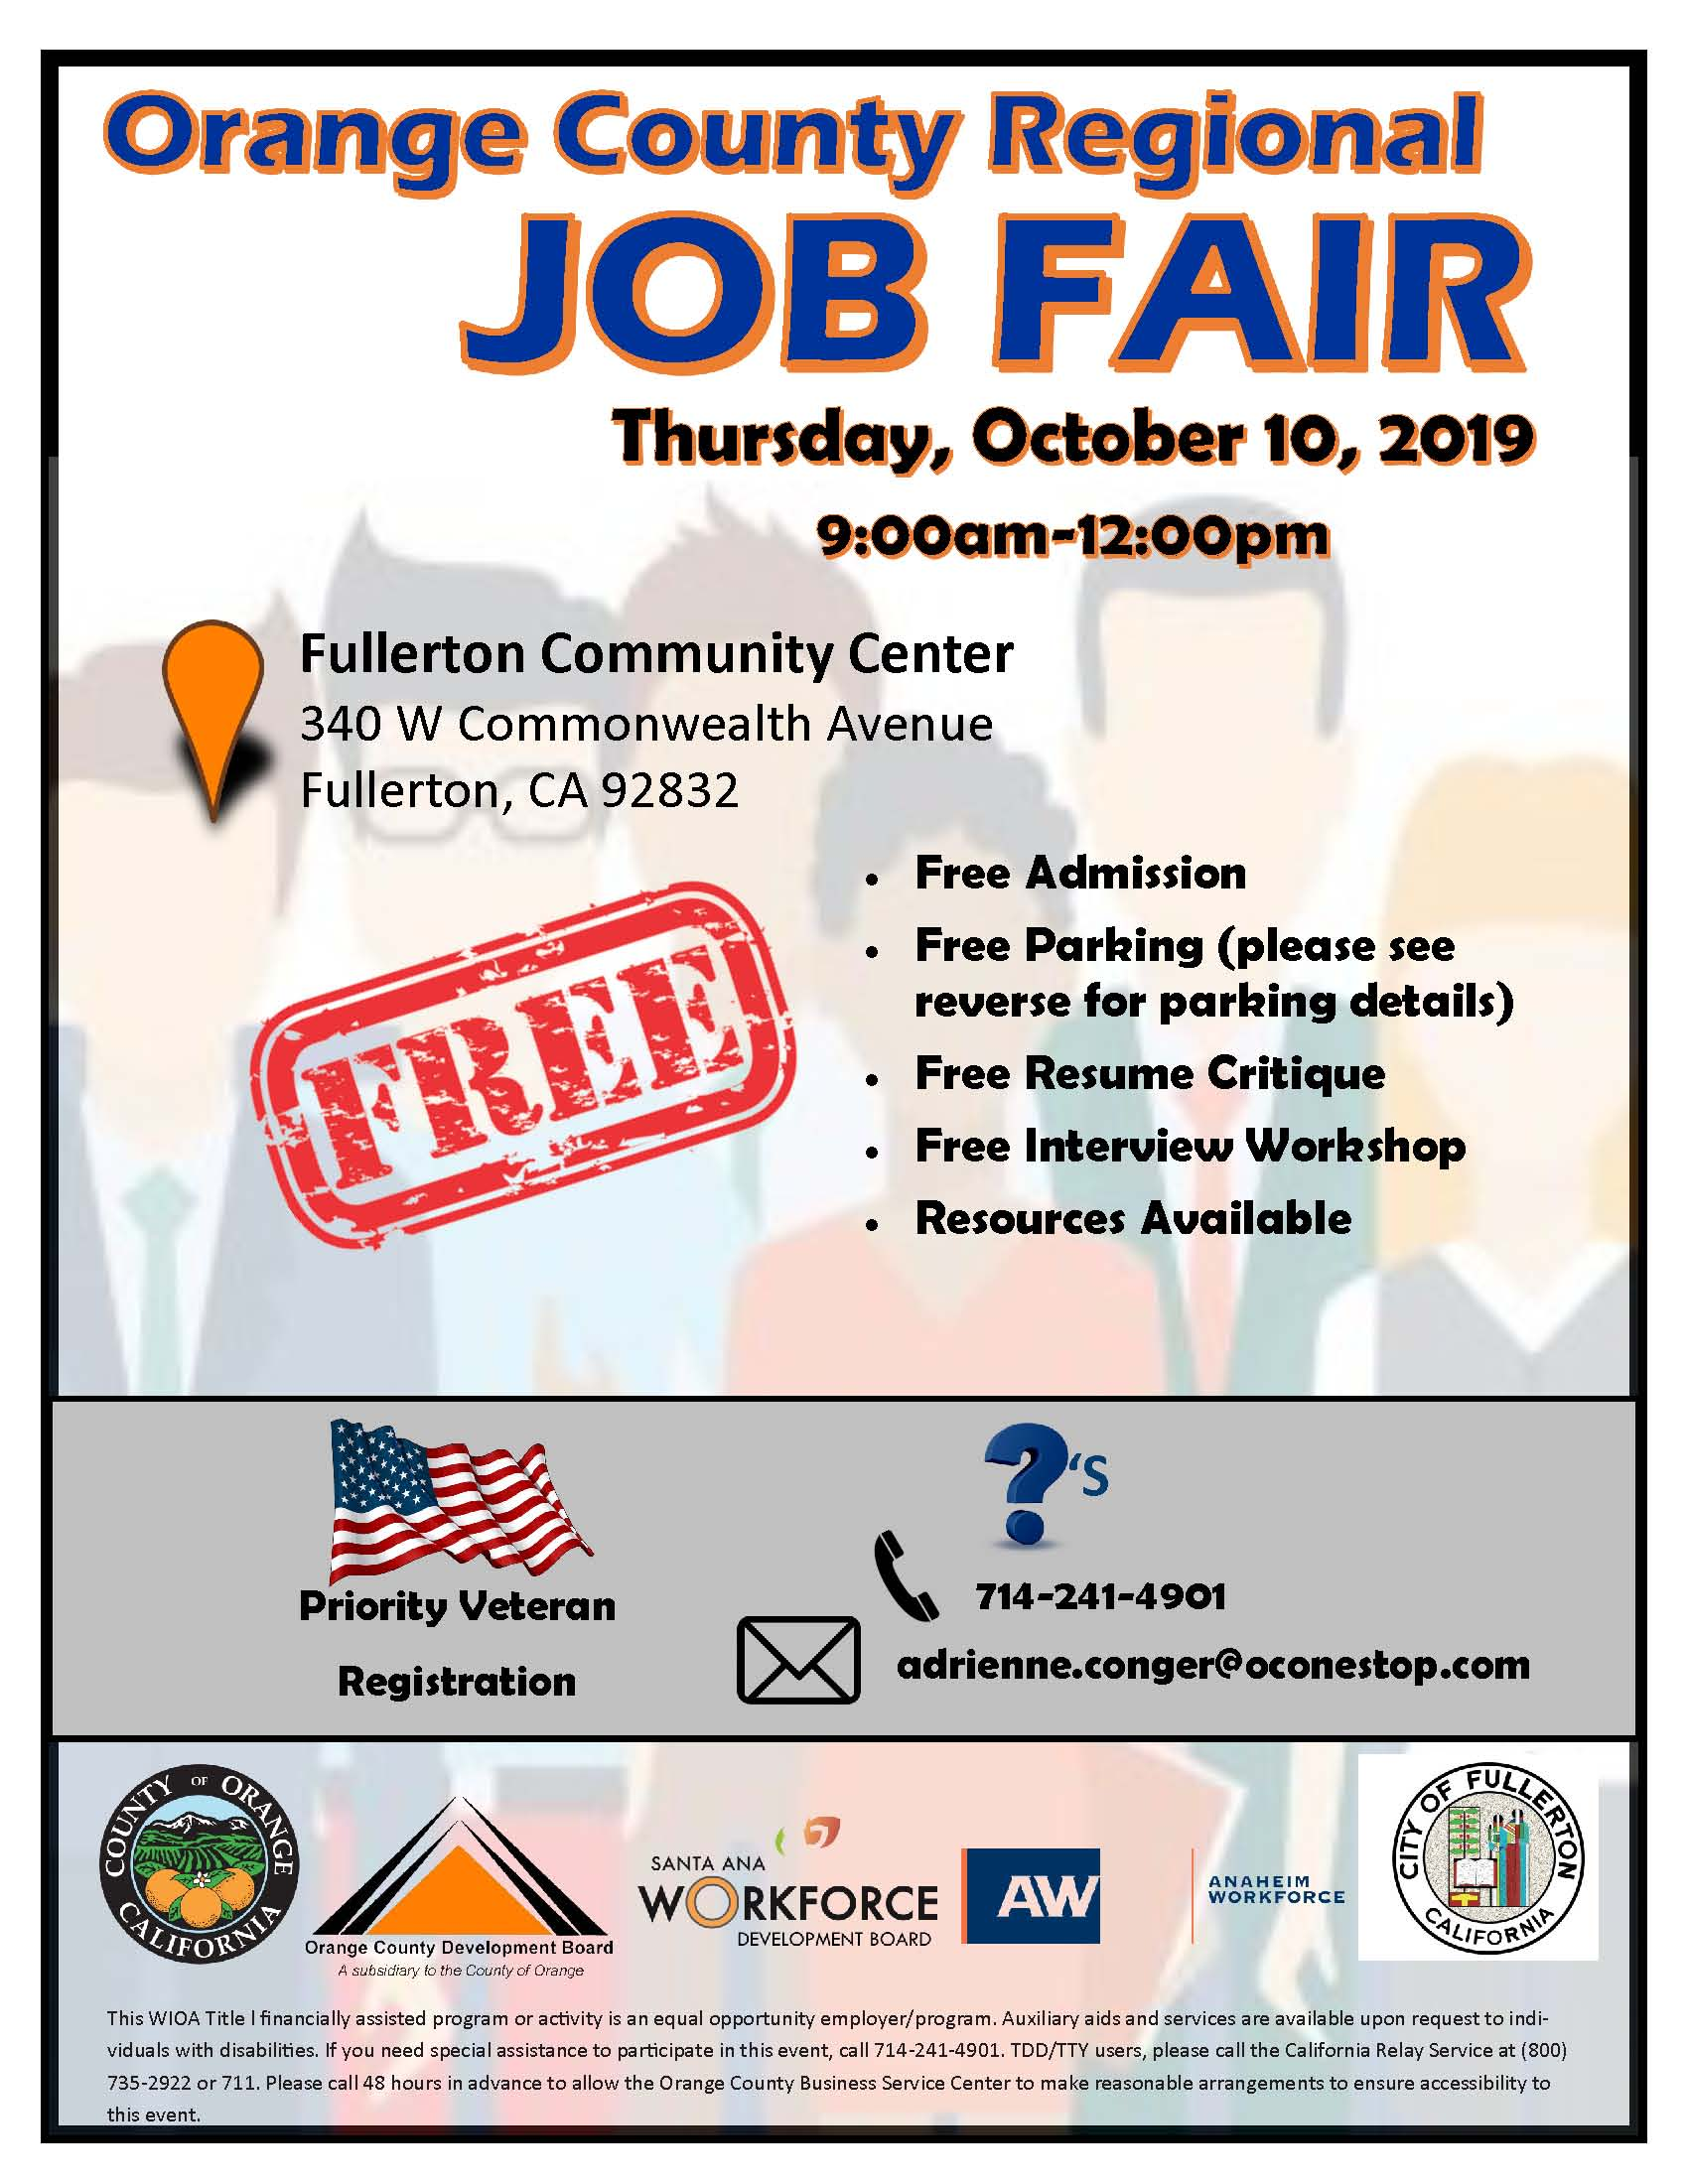 OC Regional Job Fair Flyer-Job Seeker_Page_1